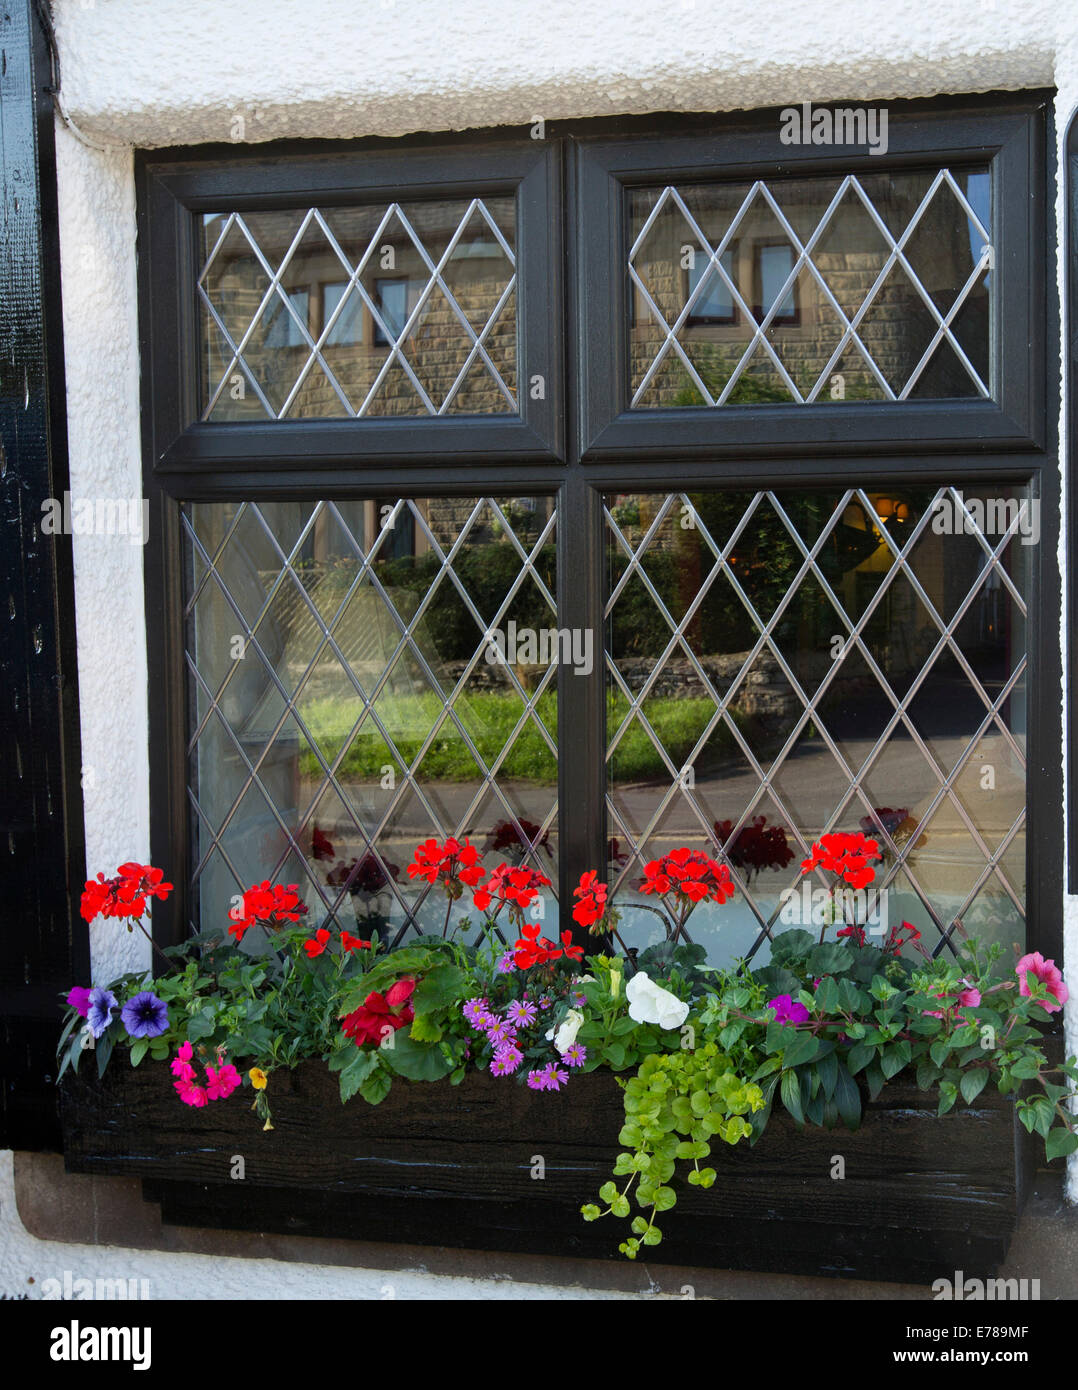 Window box with brightly coloured display of red  geraniums and pink and purple petunias outside window of cottage - Stock Image